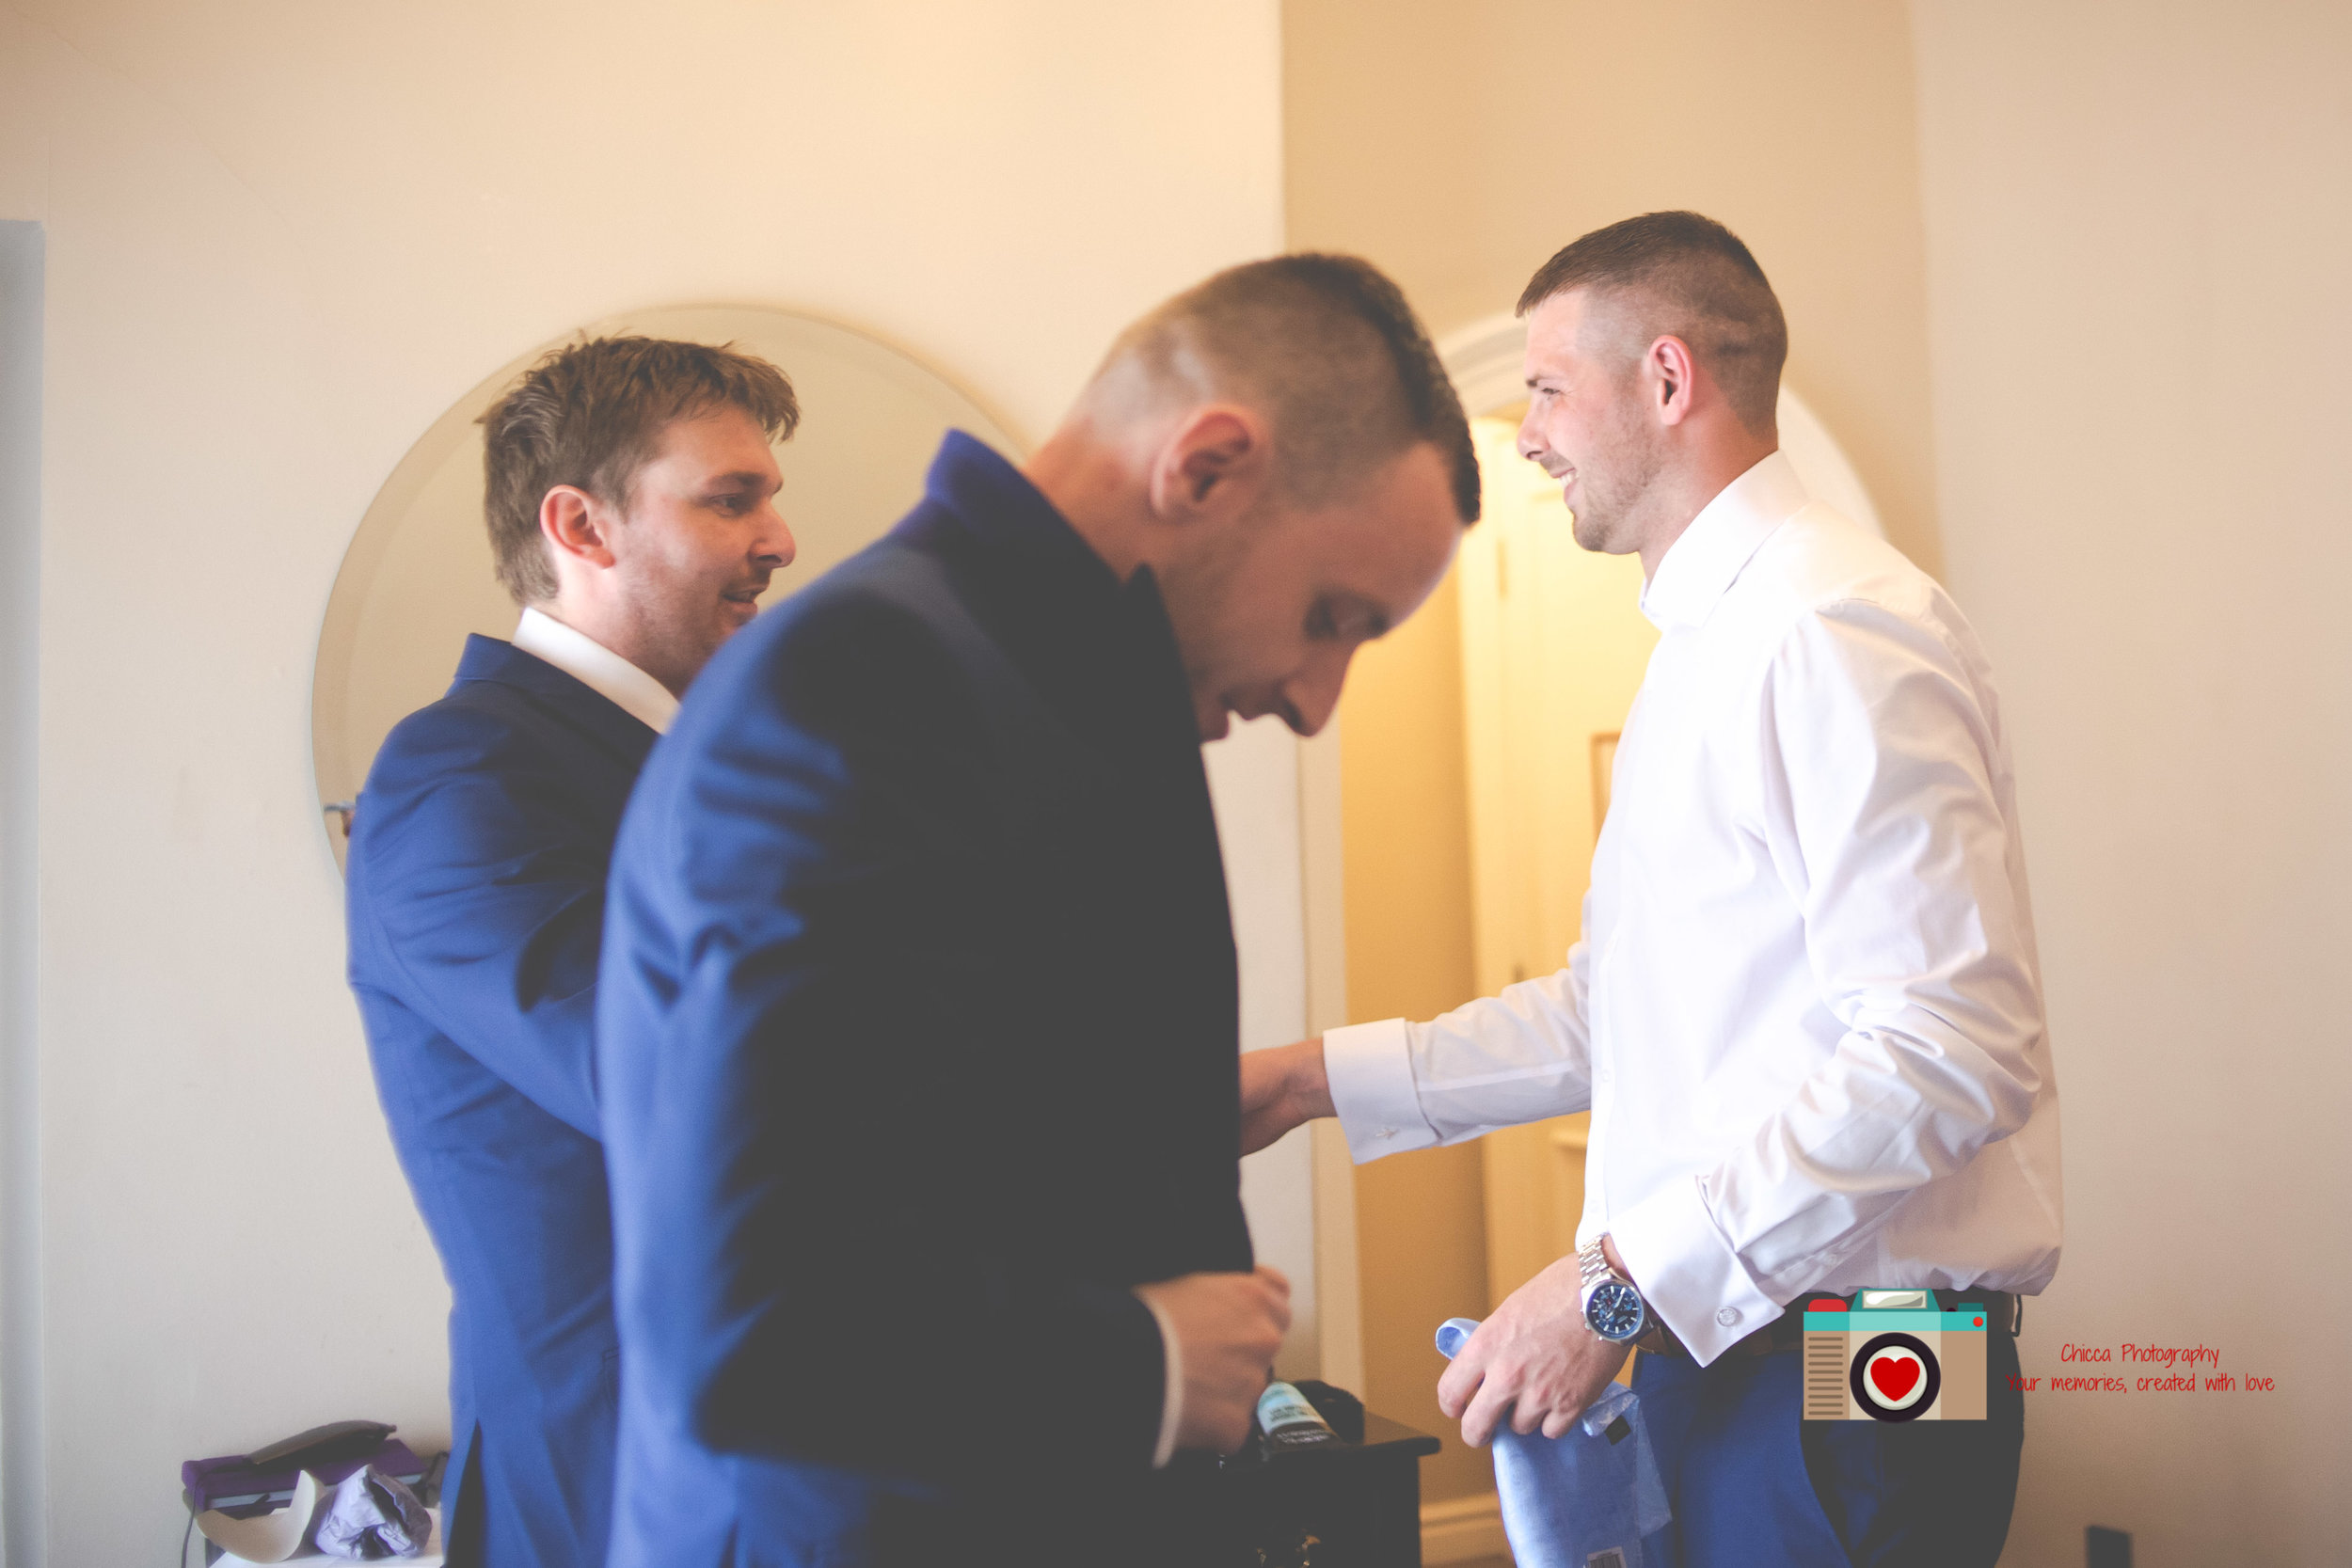 bradford-wedding-photographer-great-victoria-hotel-04